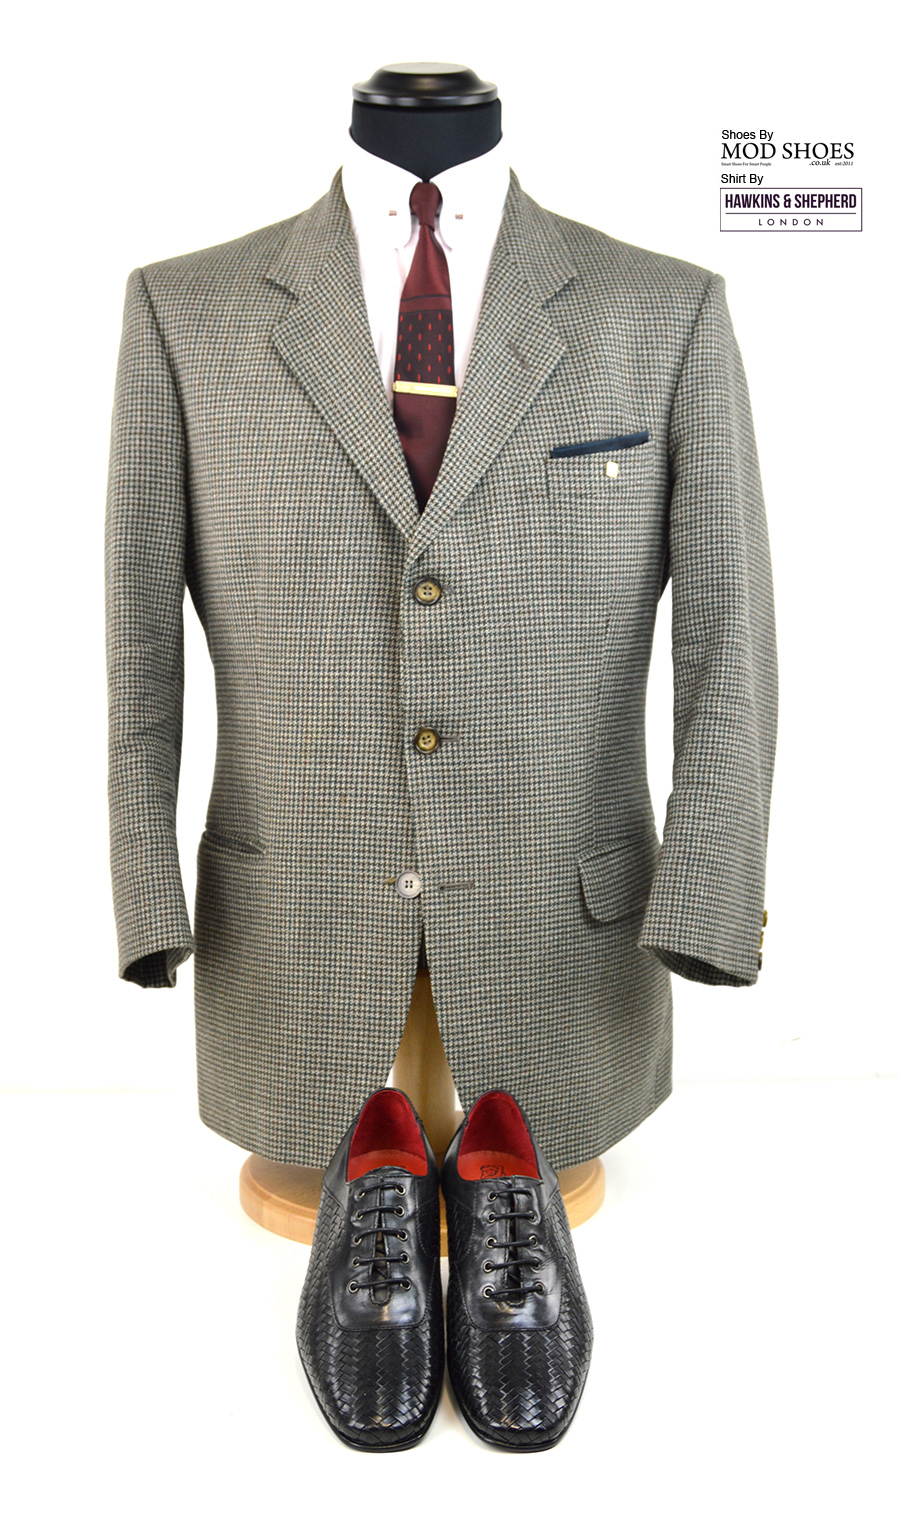 modshoes-weavers-with-mod-suit-and-hawkins-sherped-shirt